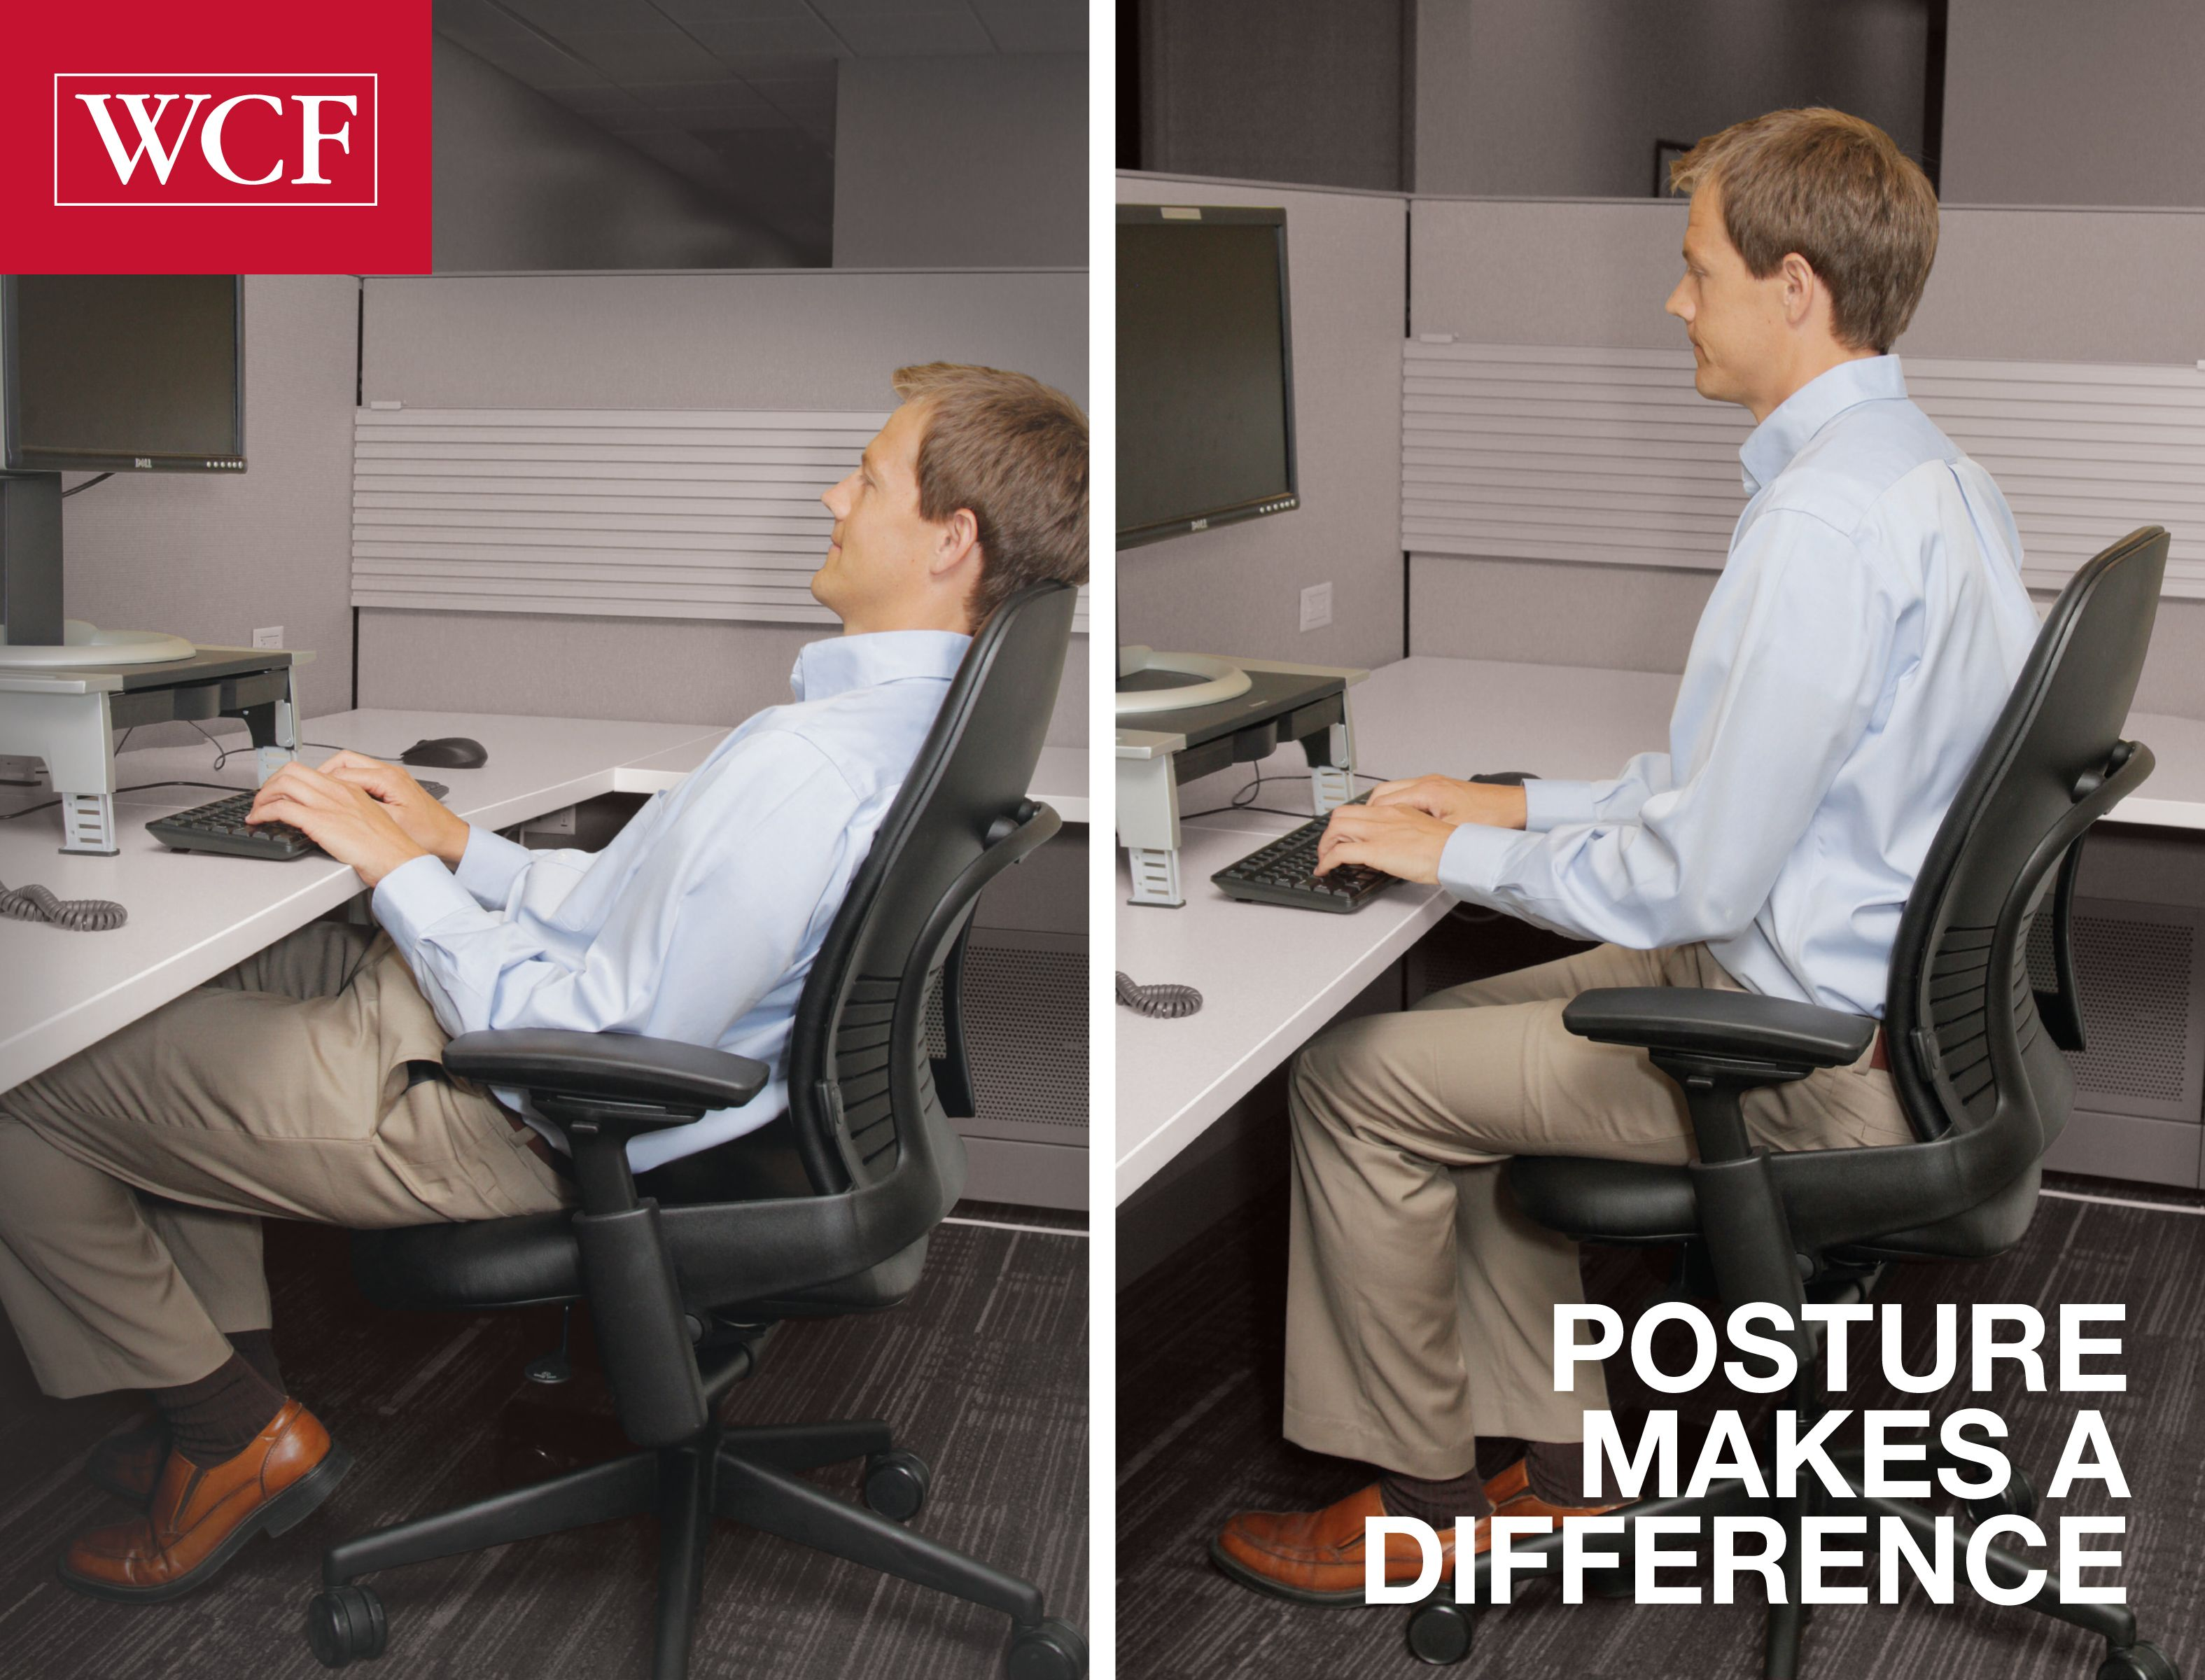 Office ergonomics posture makes a difference www